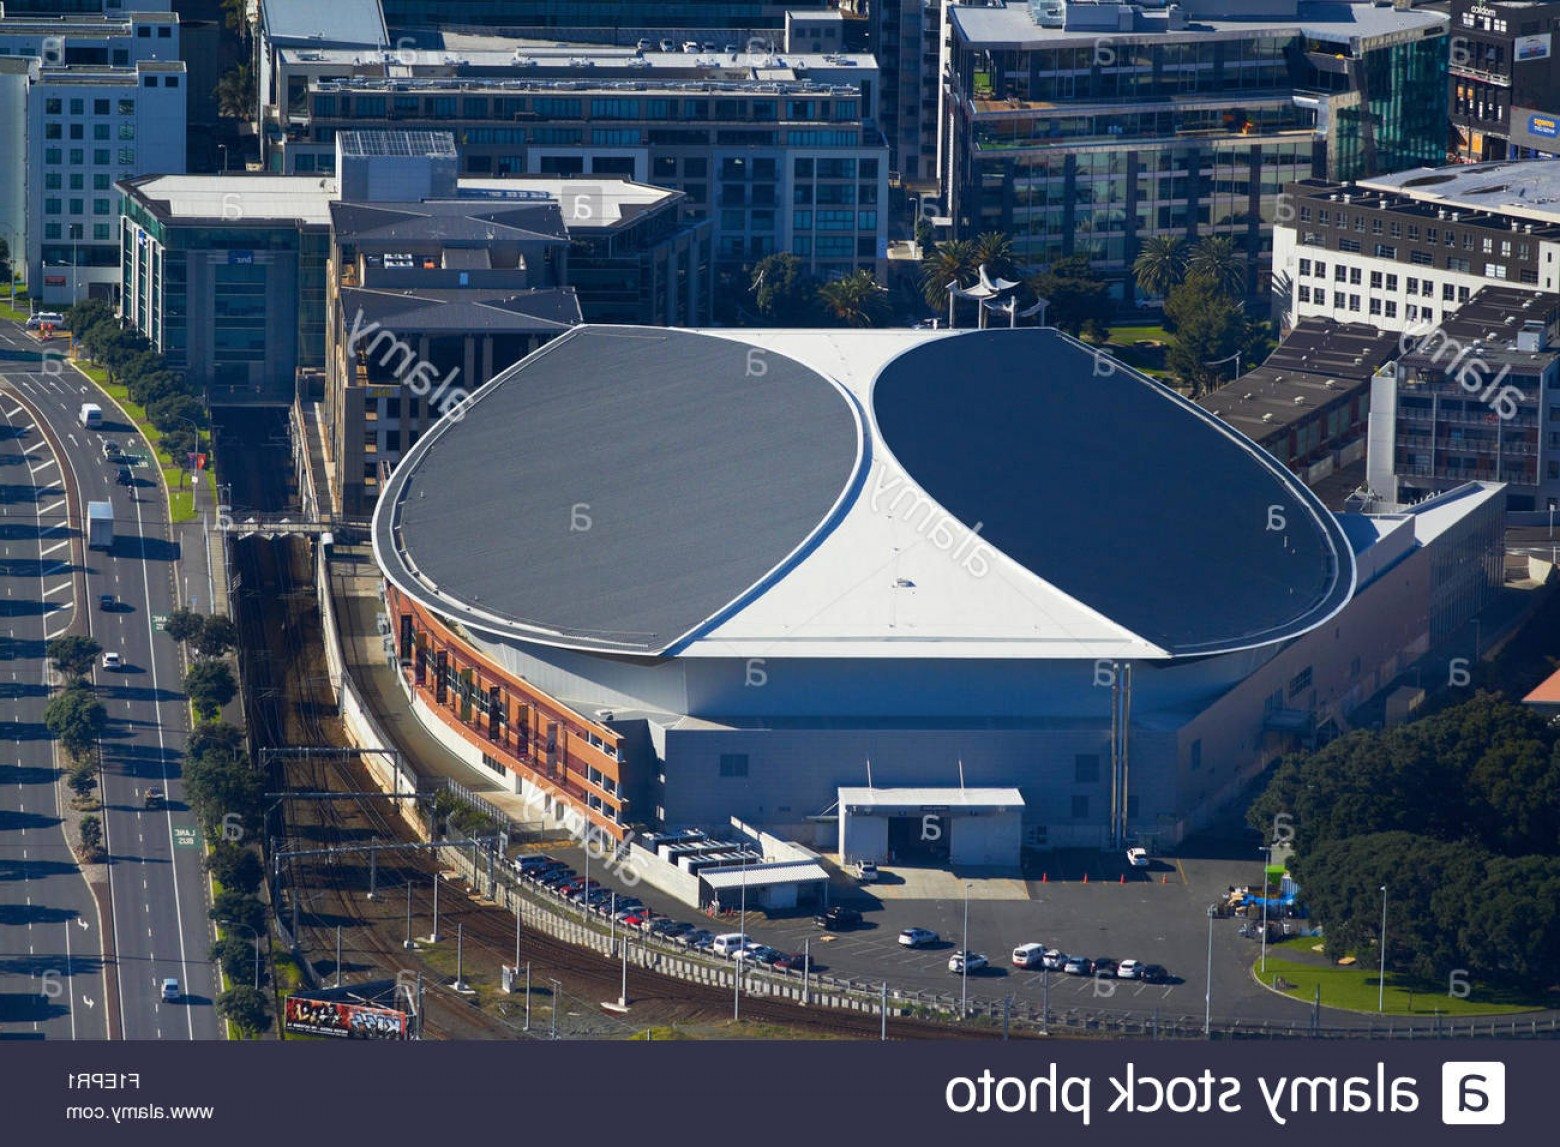 Vector Arena Auckland Events: Stock Photo Vector Arena Events Centre Auckland North Island New Zealand Aerial